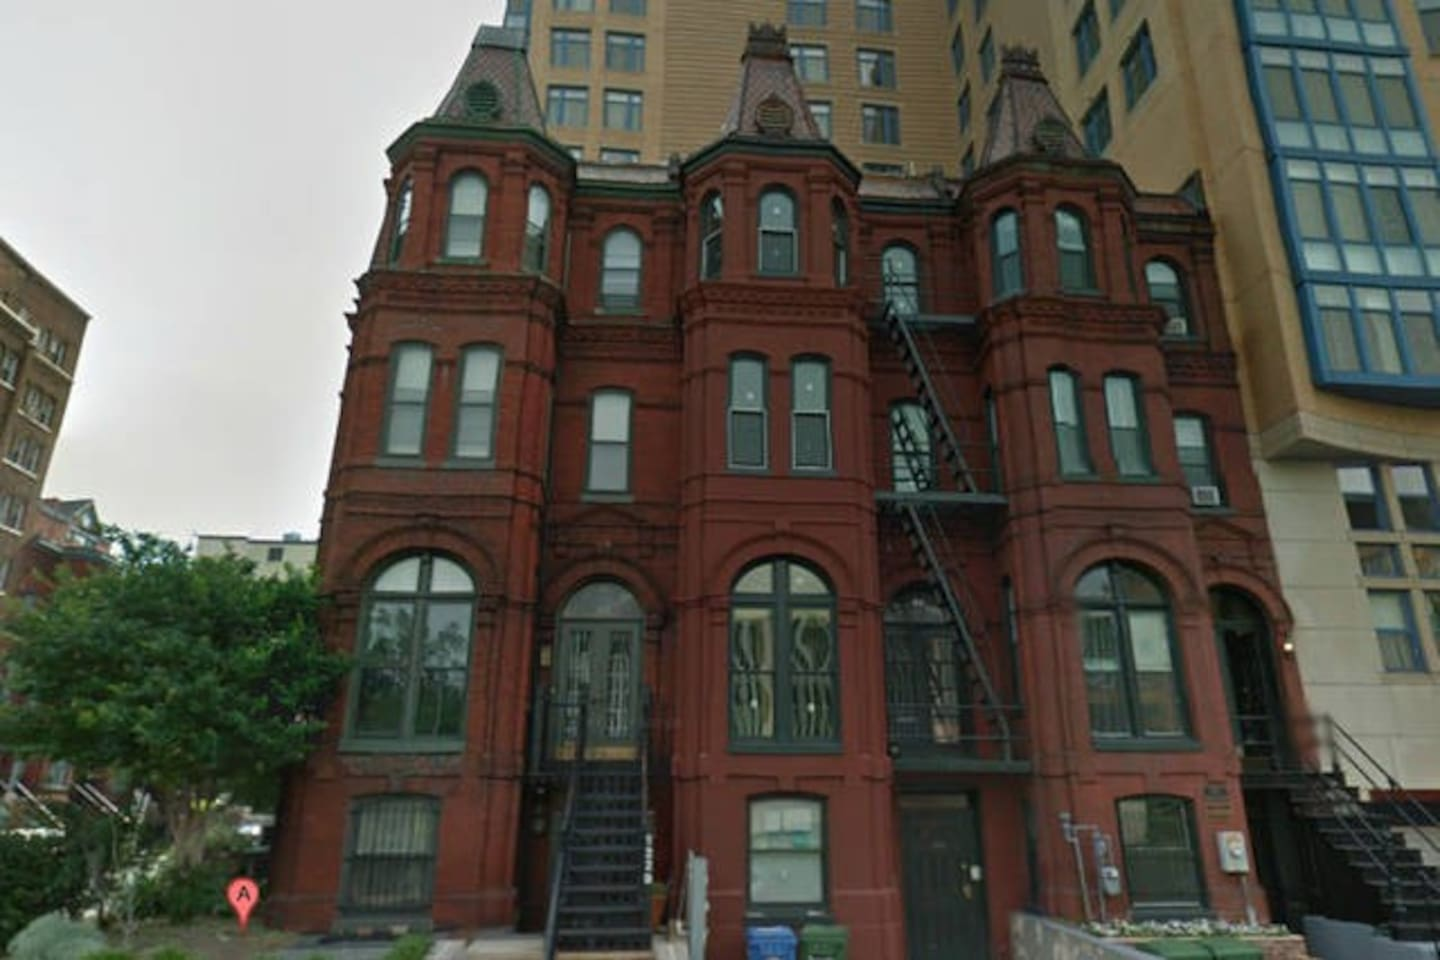 1870 Victorian rowhouse, completely renovated in 2015 with high end architectural features